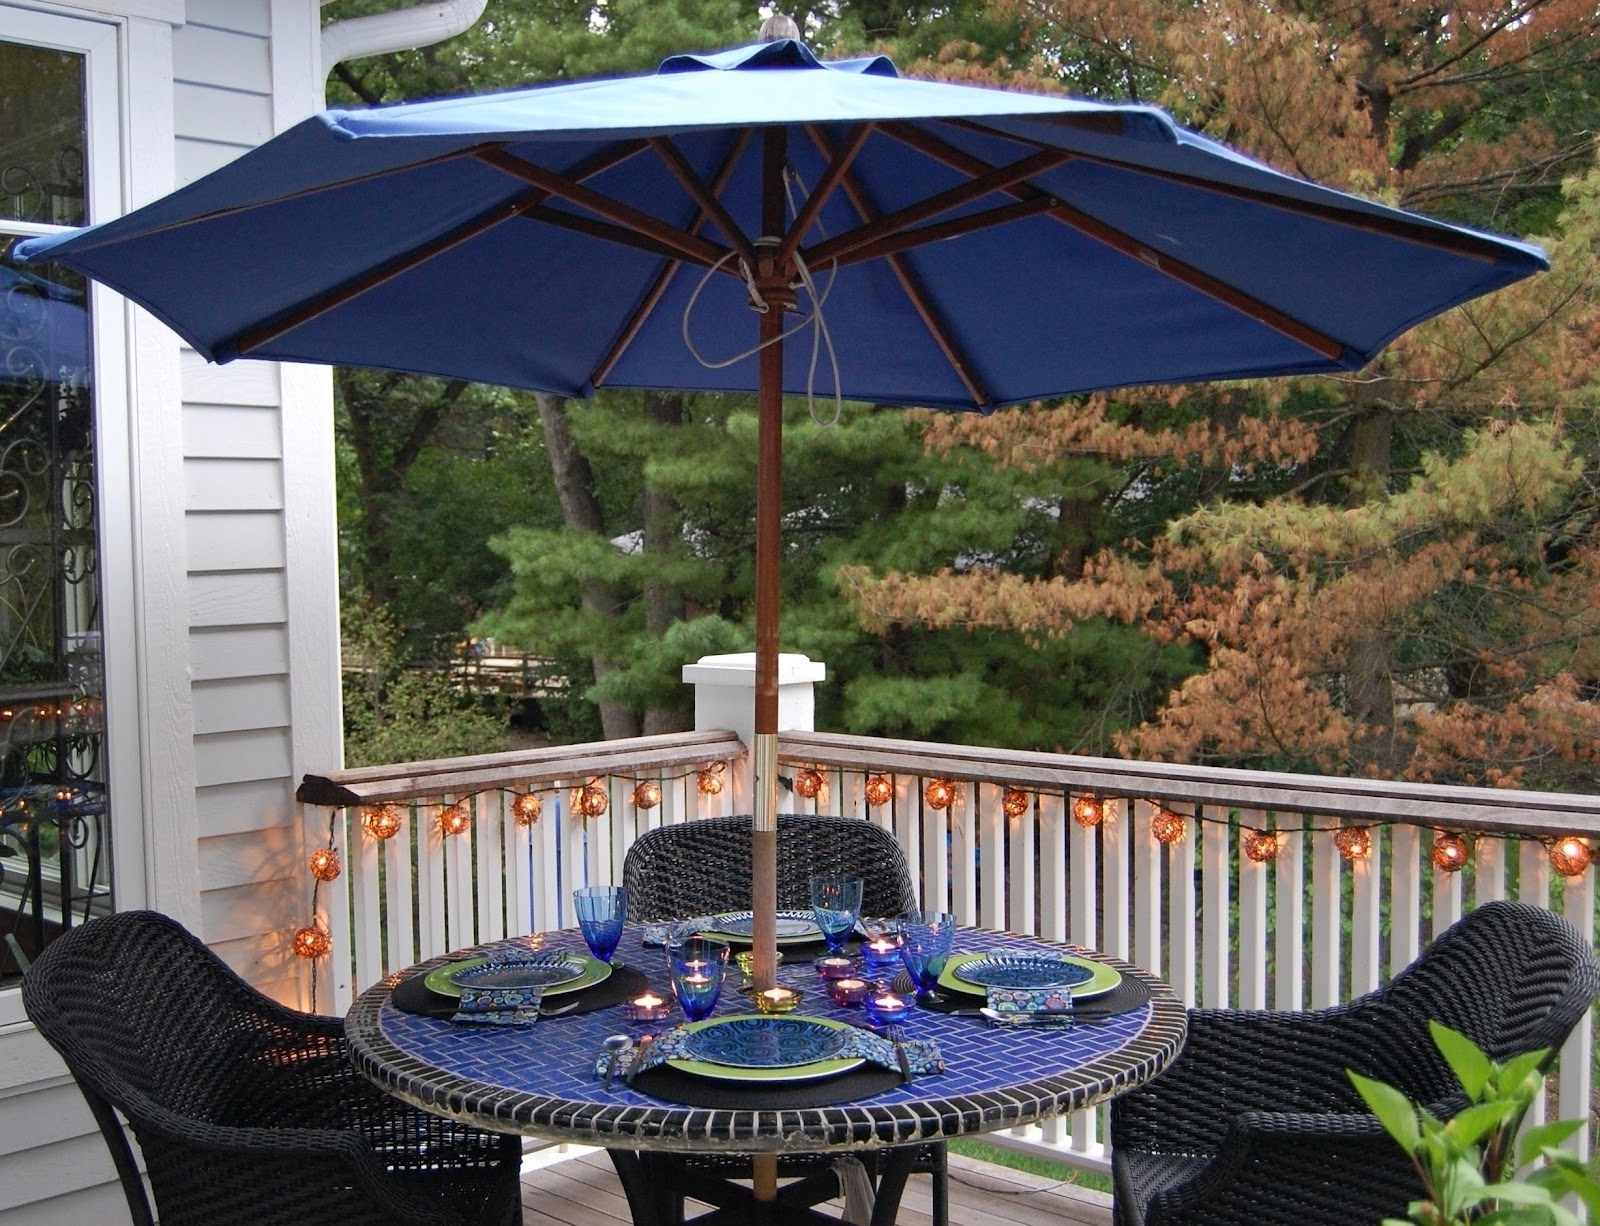 Small Patio Table With Chairs Balcony And Large Umbrella Hole Tables With Regard To Current Small Patio Tables With Umbrellas Hole (View 14 of 20)